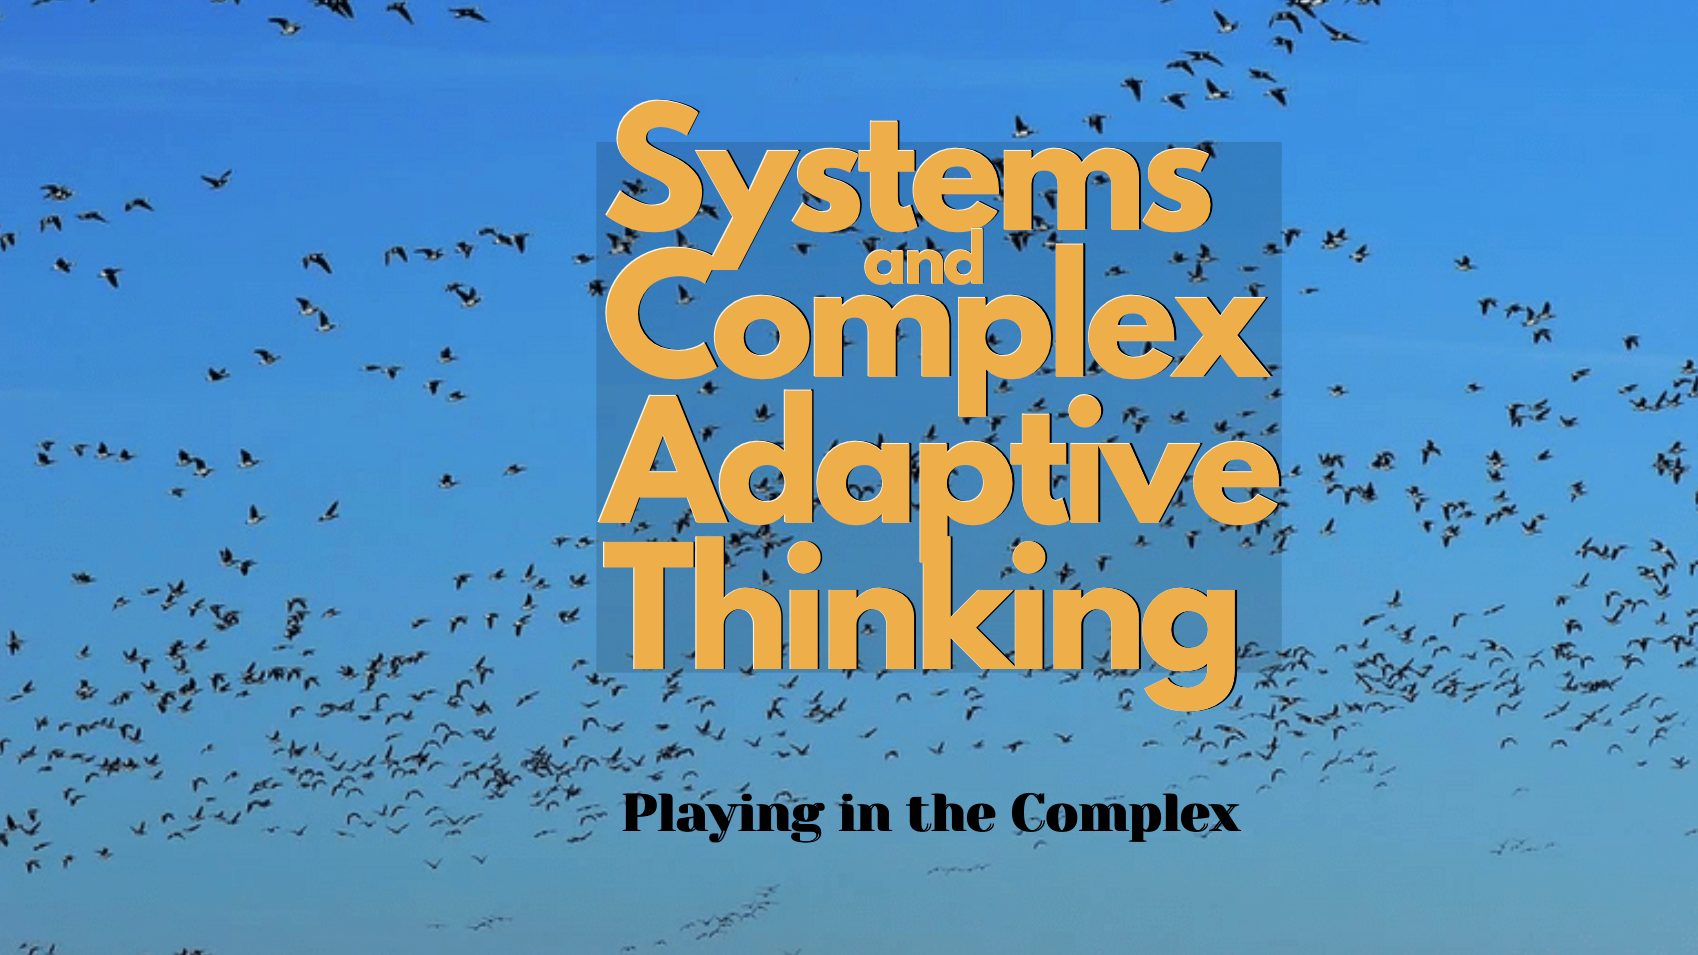 Systems and Complex Adaptive Thinking